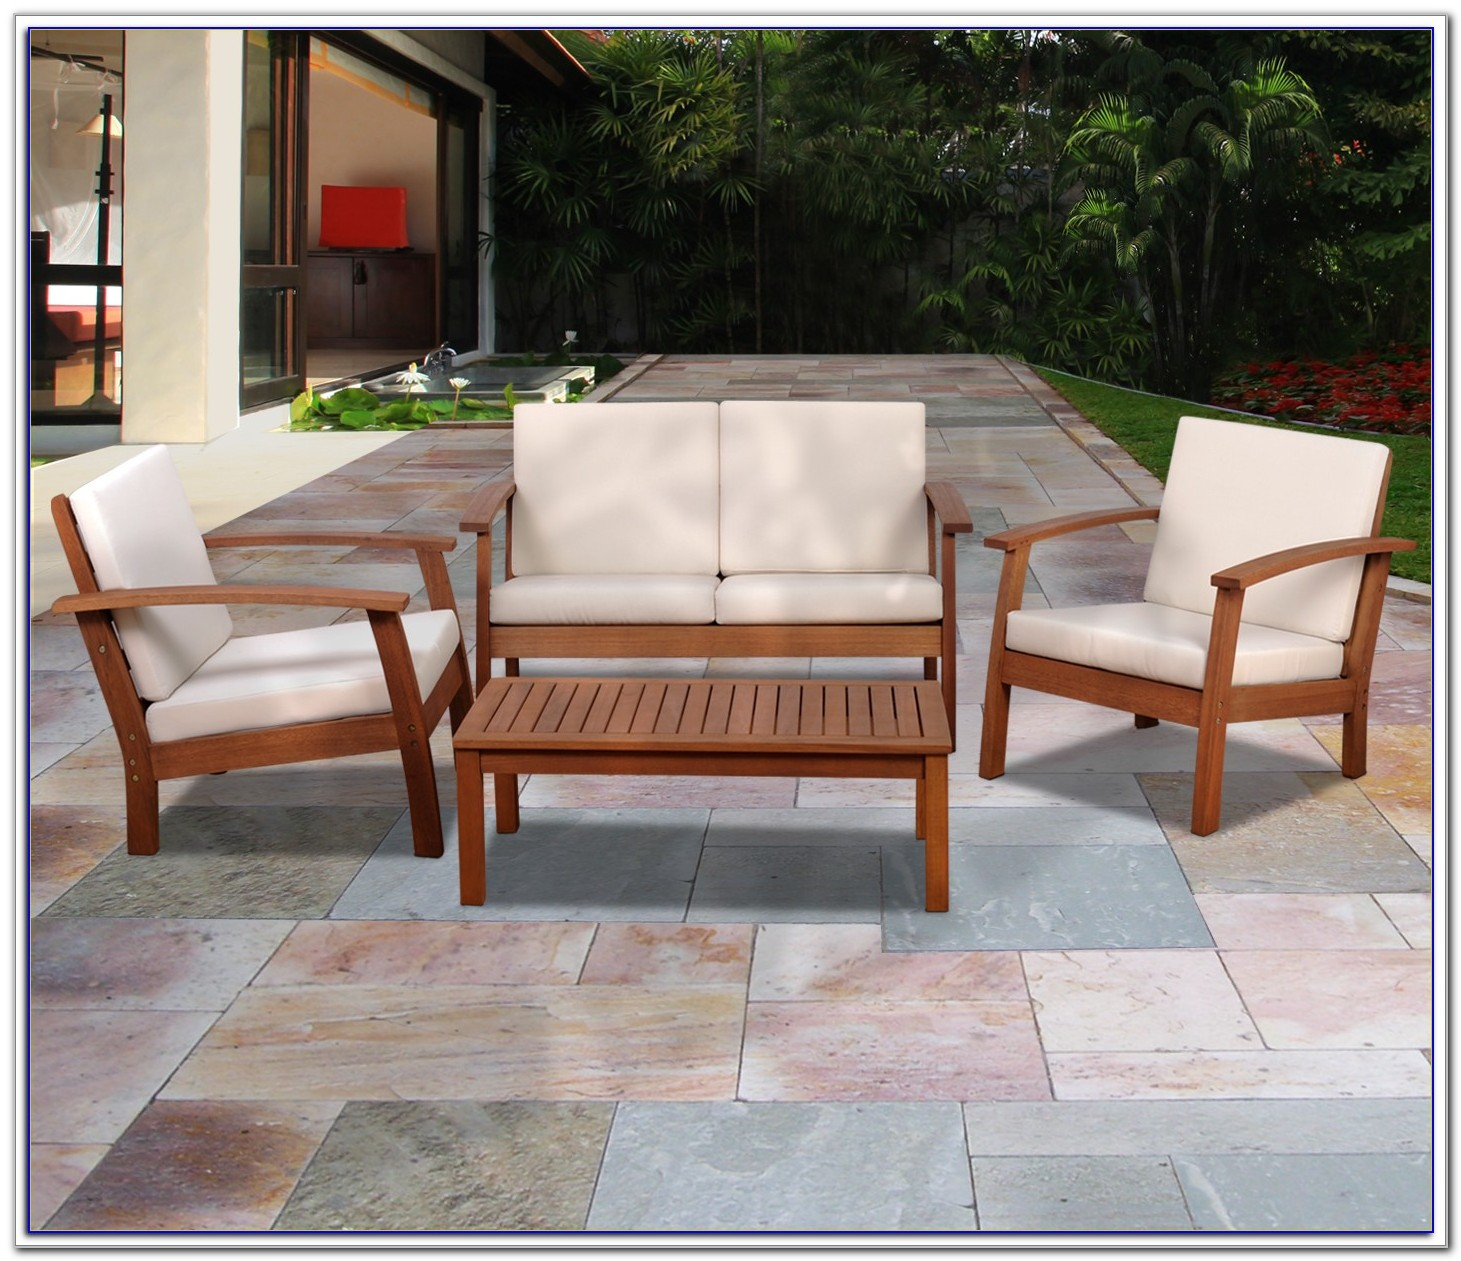 Sears Clearance Patio Furniture | Sears Patio Furniture | Sears Womens Boots